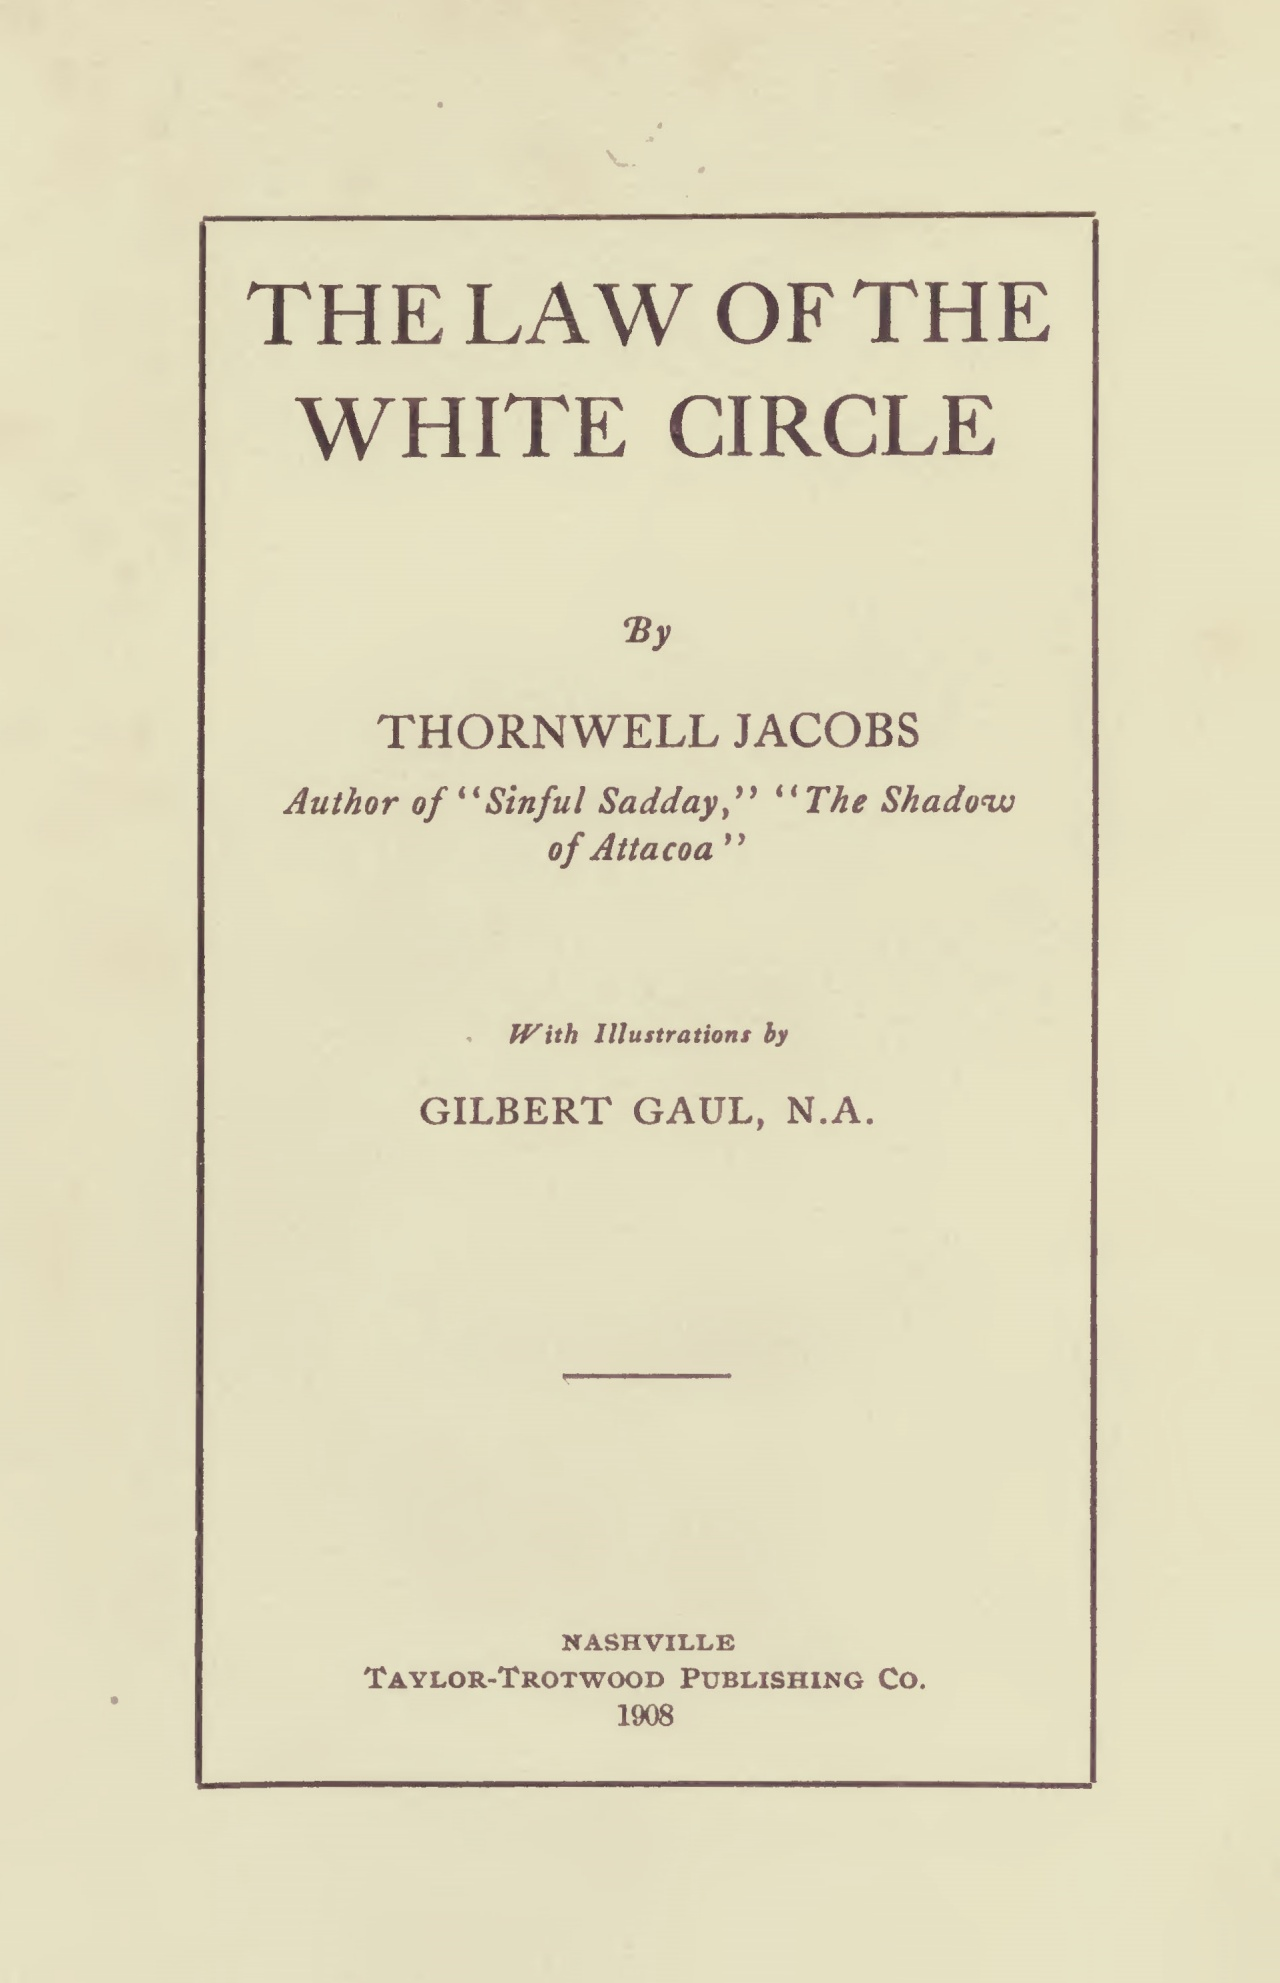 Jacobs, Thornwell, The Law of the White Circle Title Page.jpg